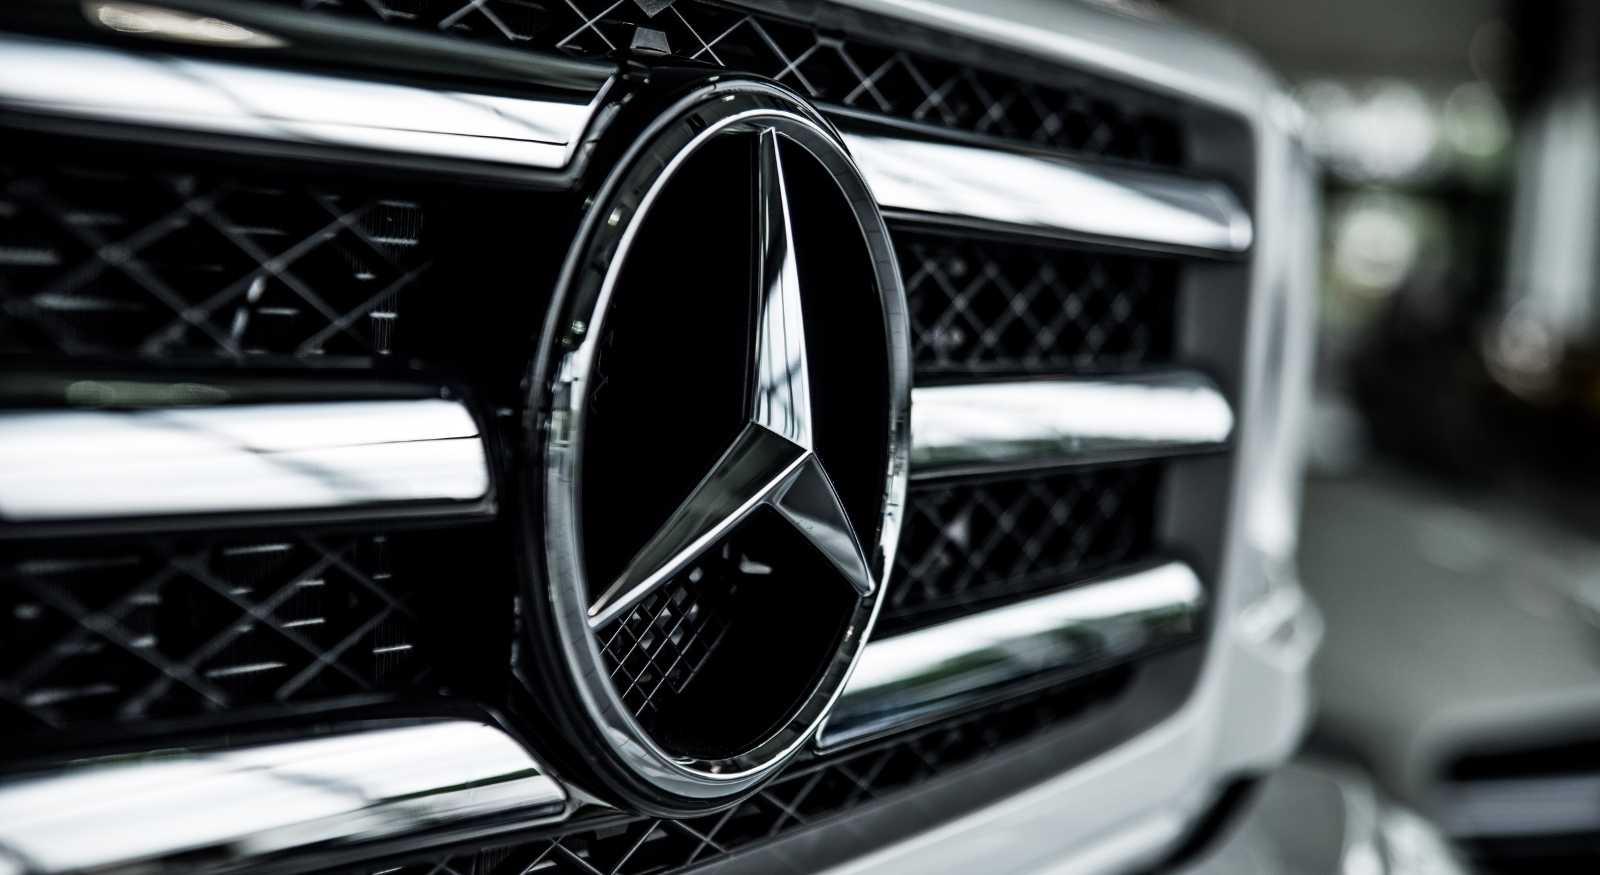 Mercedes-Benz Breach Update: 1.6 Million Records Exposed